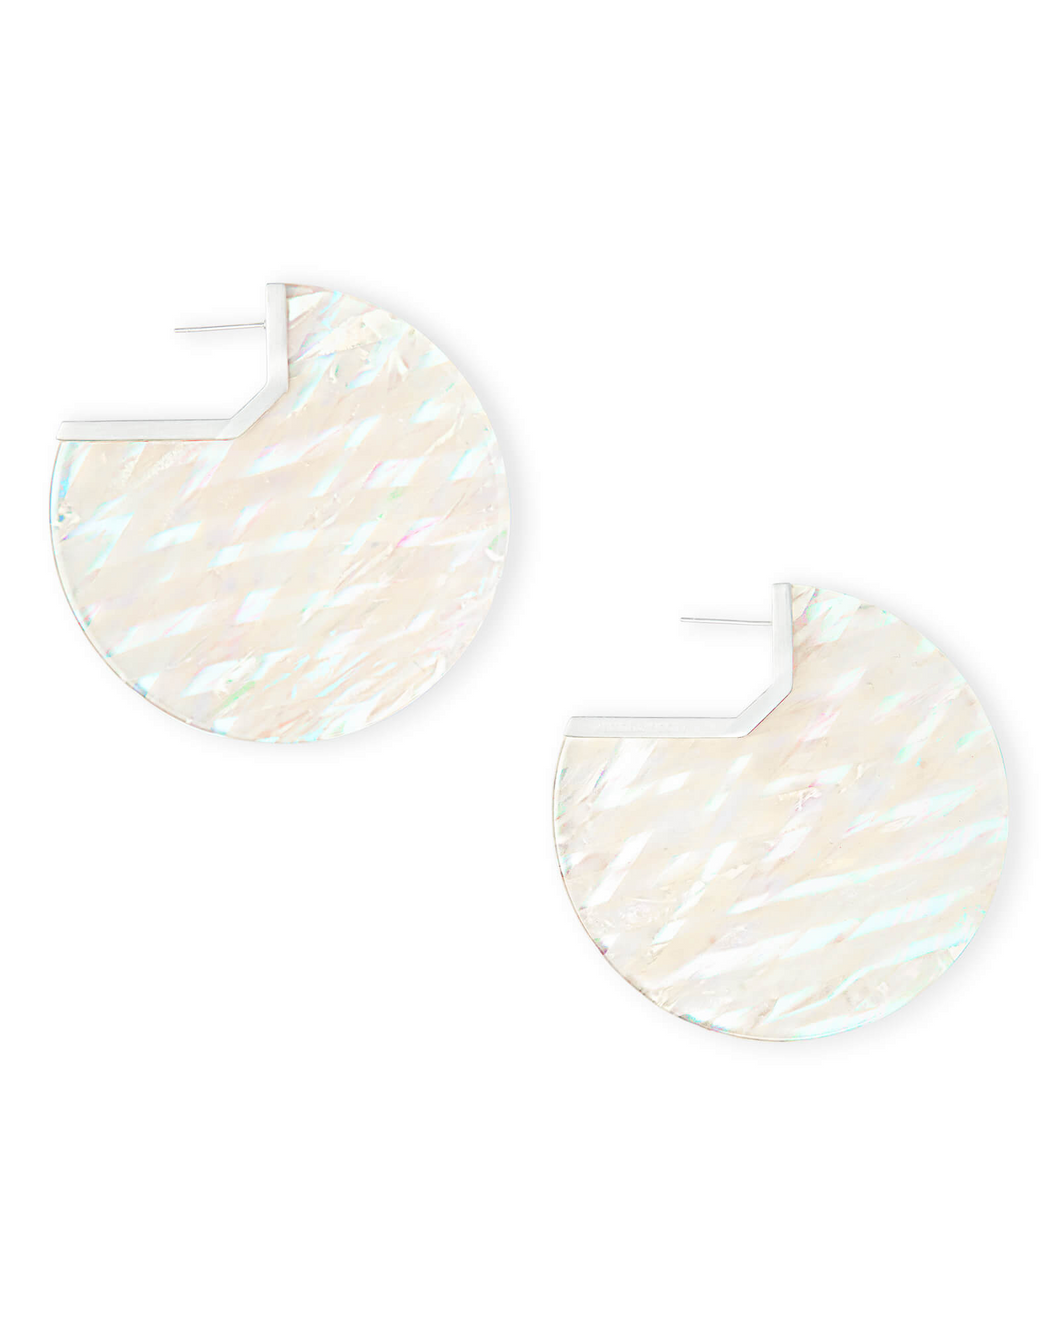 SALE-Kai Bright Silver Hoop Earrings In Iridescent Acetate